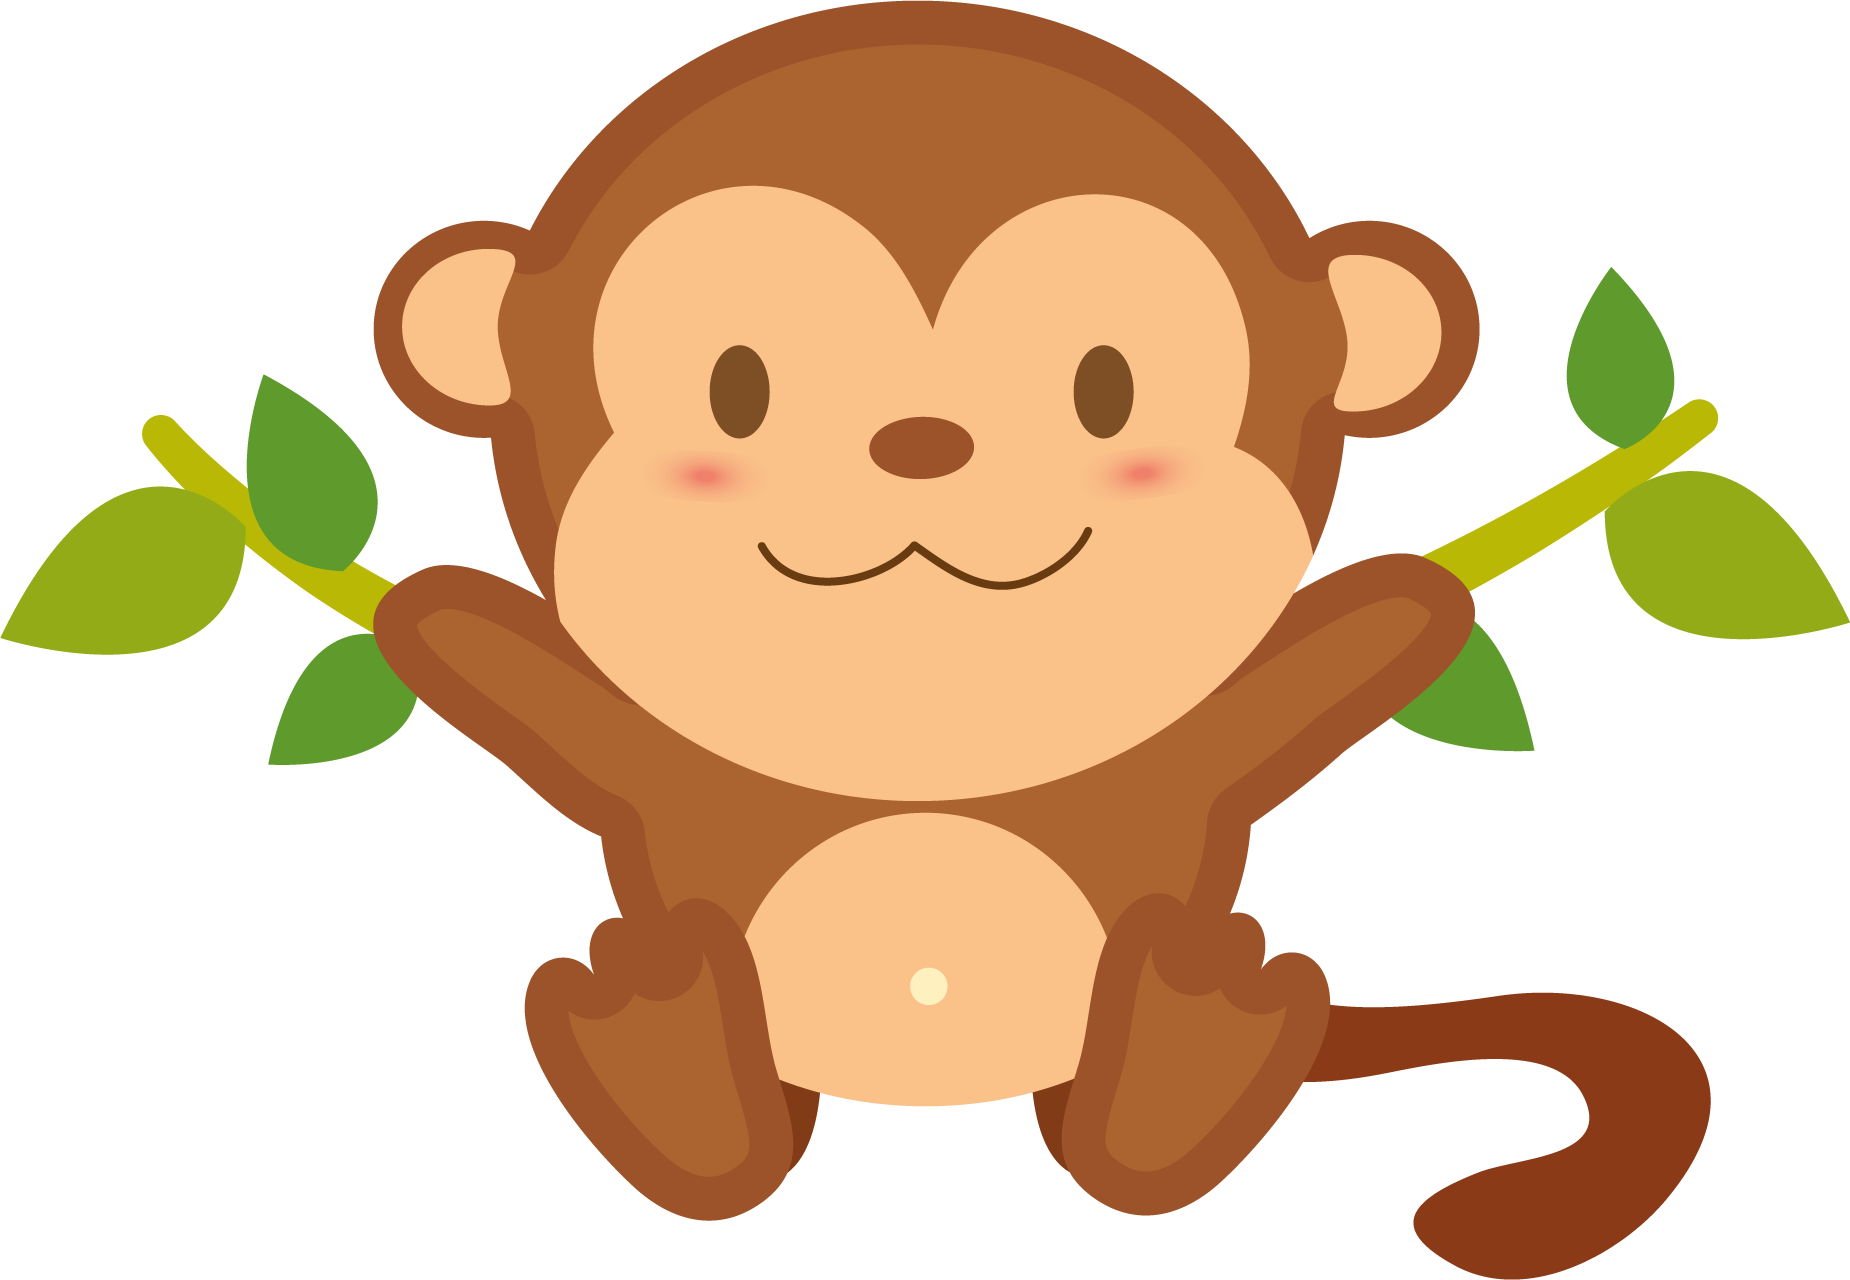 Png transparent free images. Nut clipart cartoon monkey